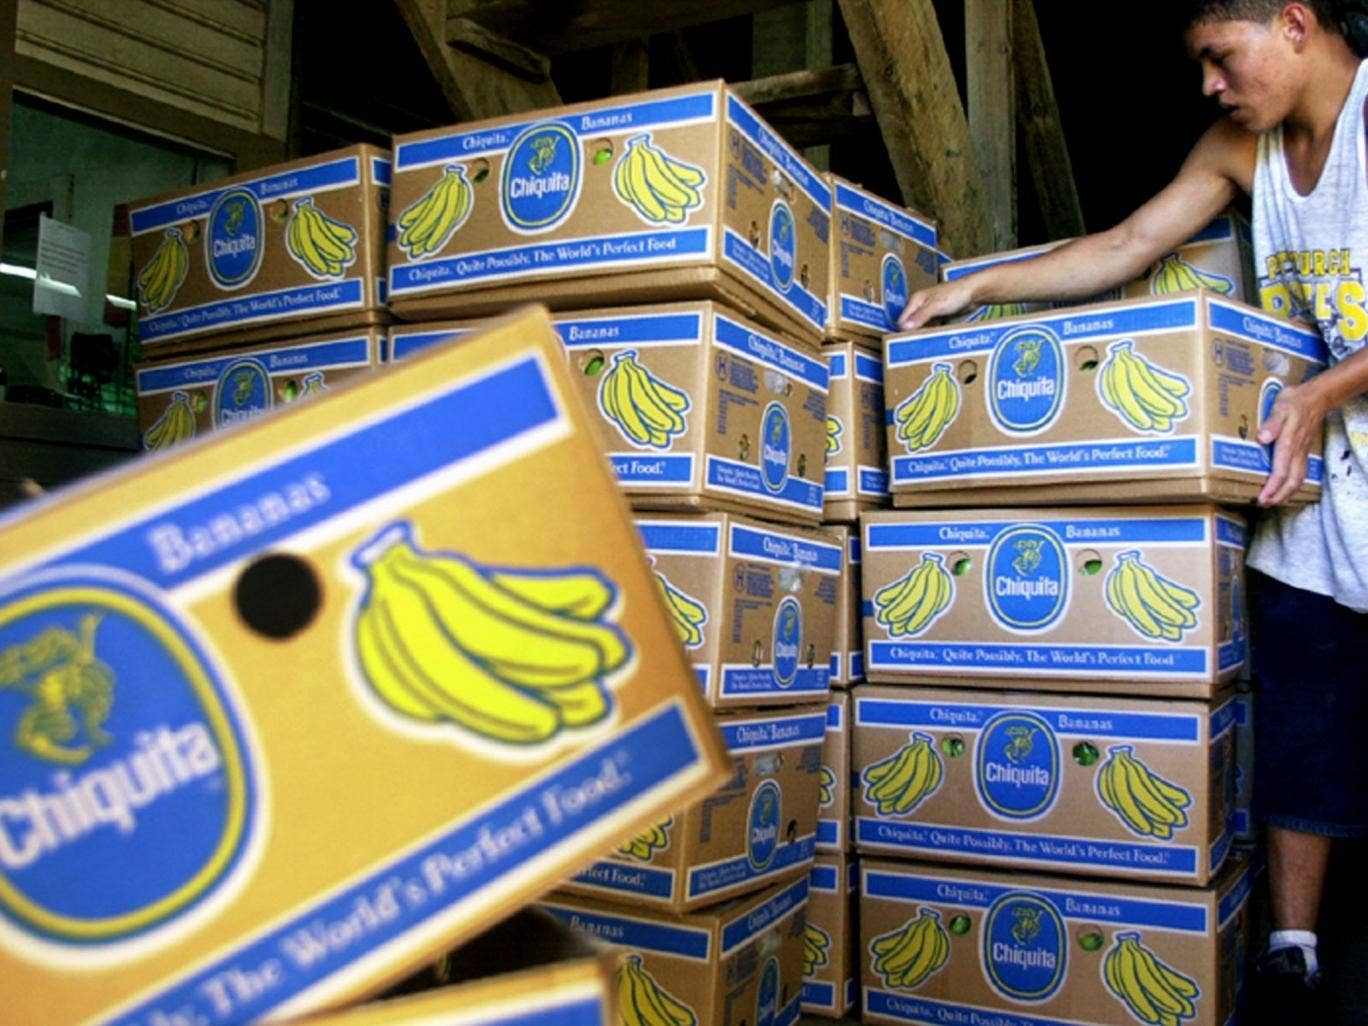 Chiquita had admitted paying $1.7m to a paramilitary group